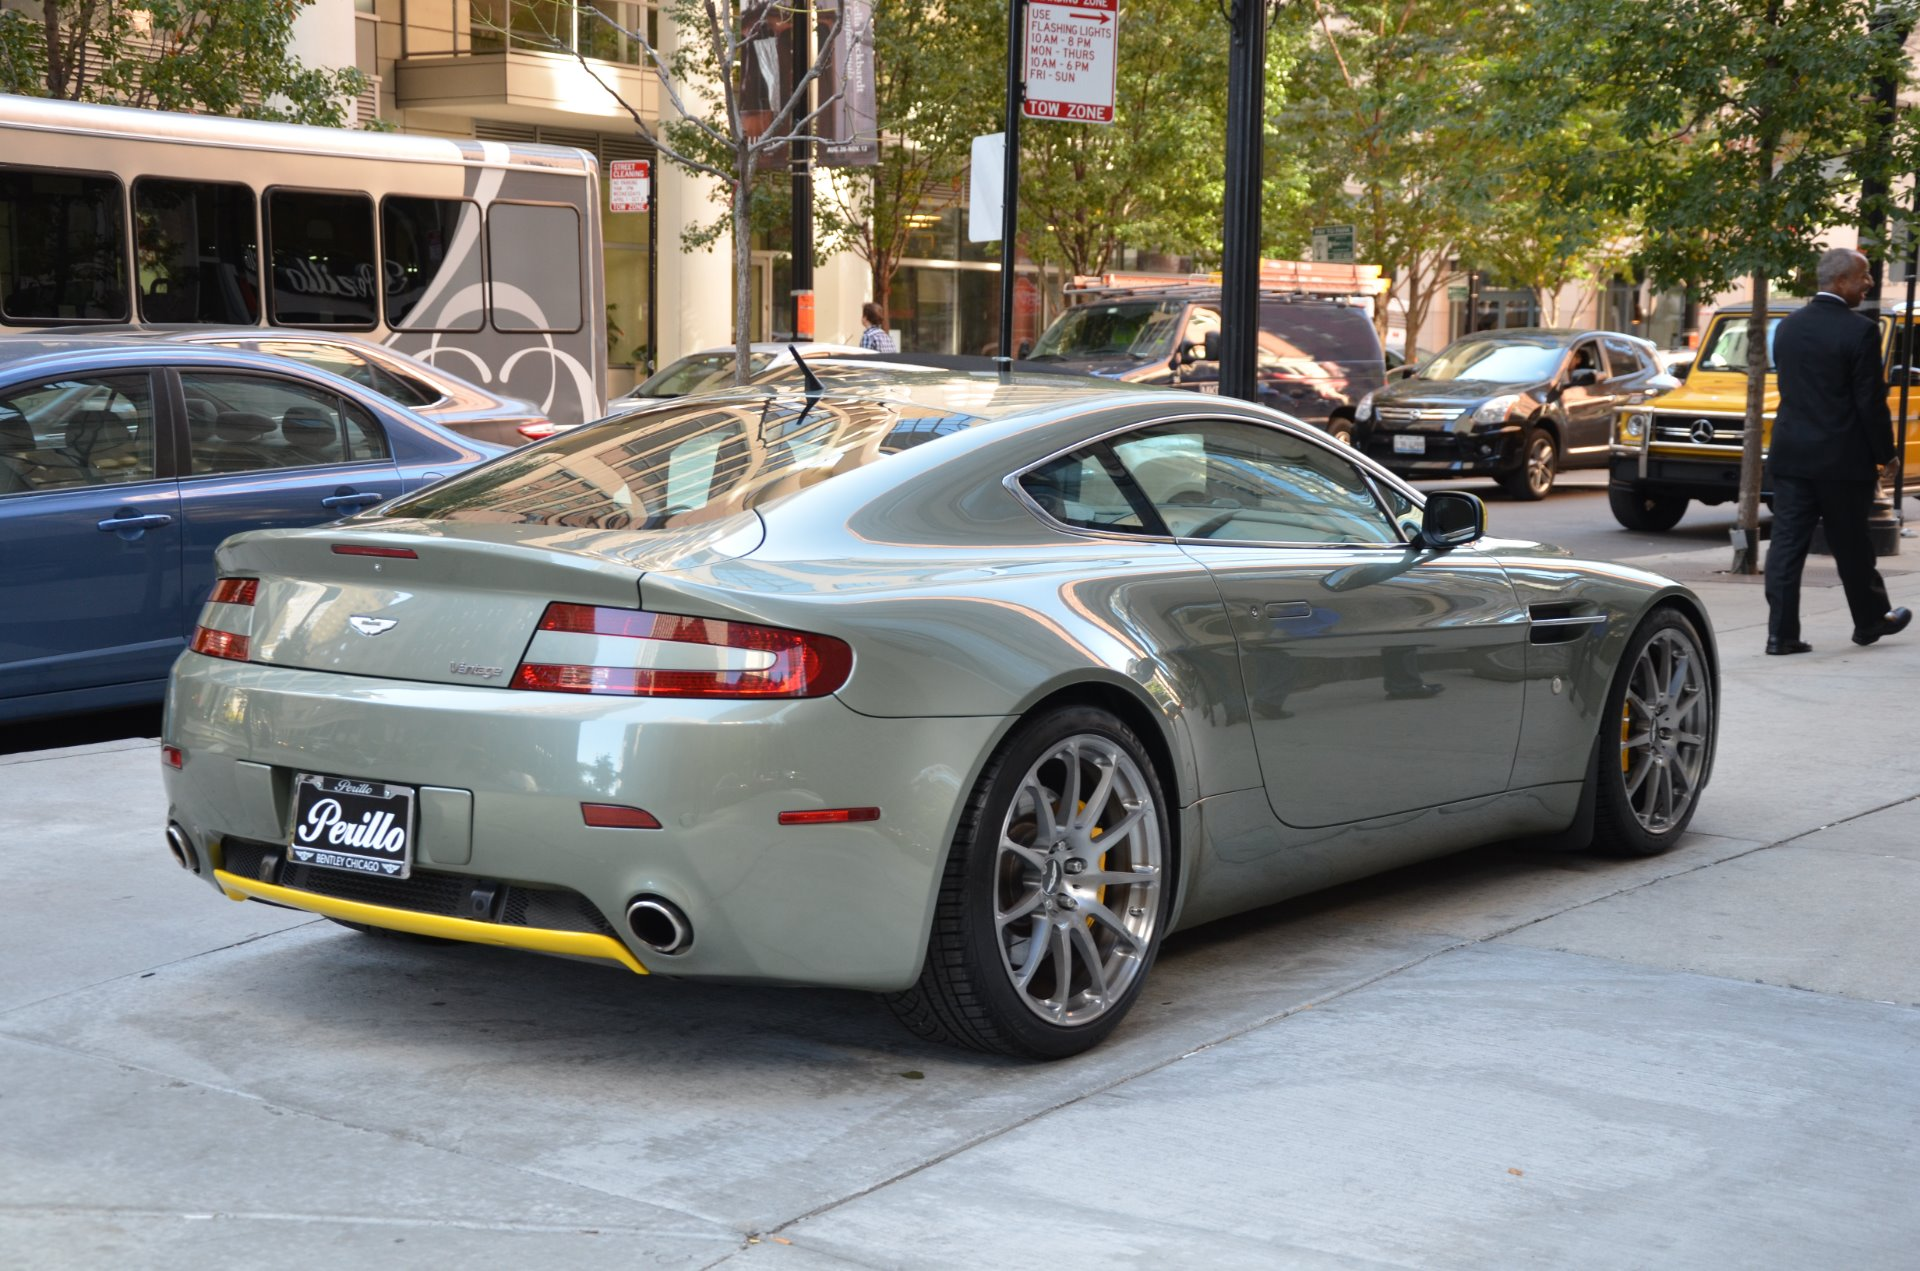 2007 aston martin v8 vantage stock l329aa for sale near chicago il il aston martin dealer. Black Bedroom Furniture Sets. Home Design Ideas